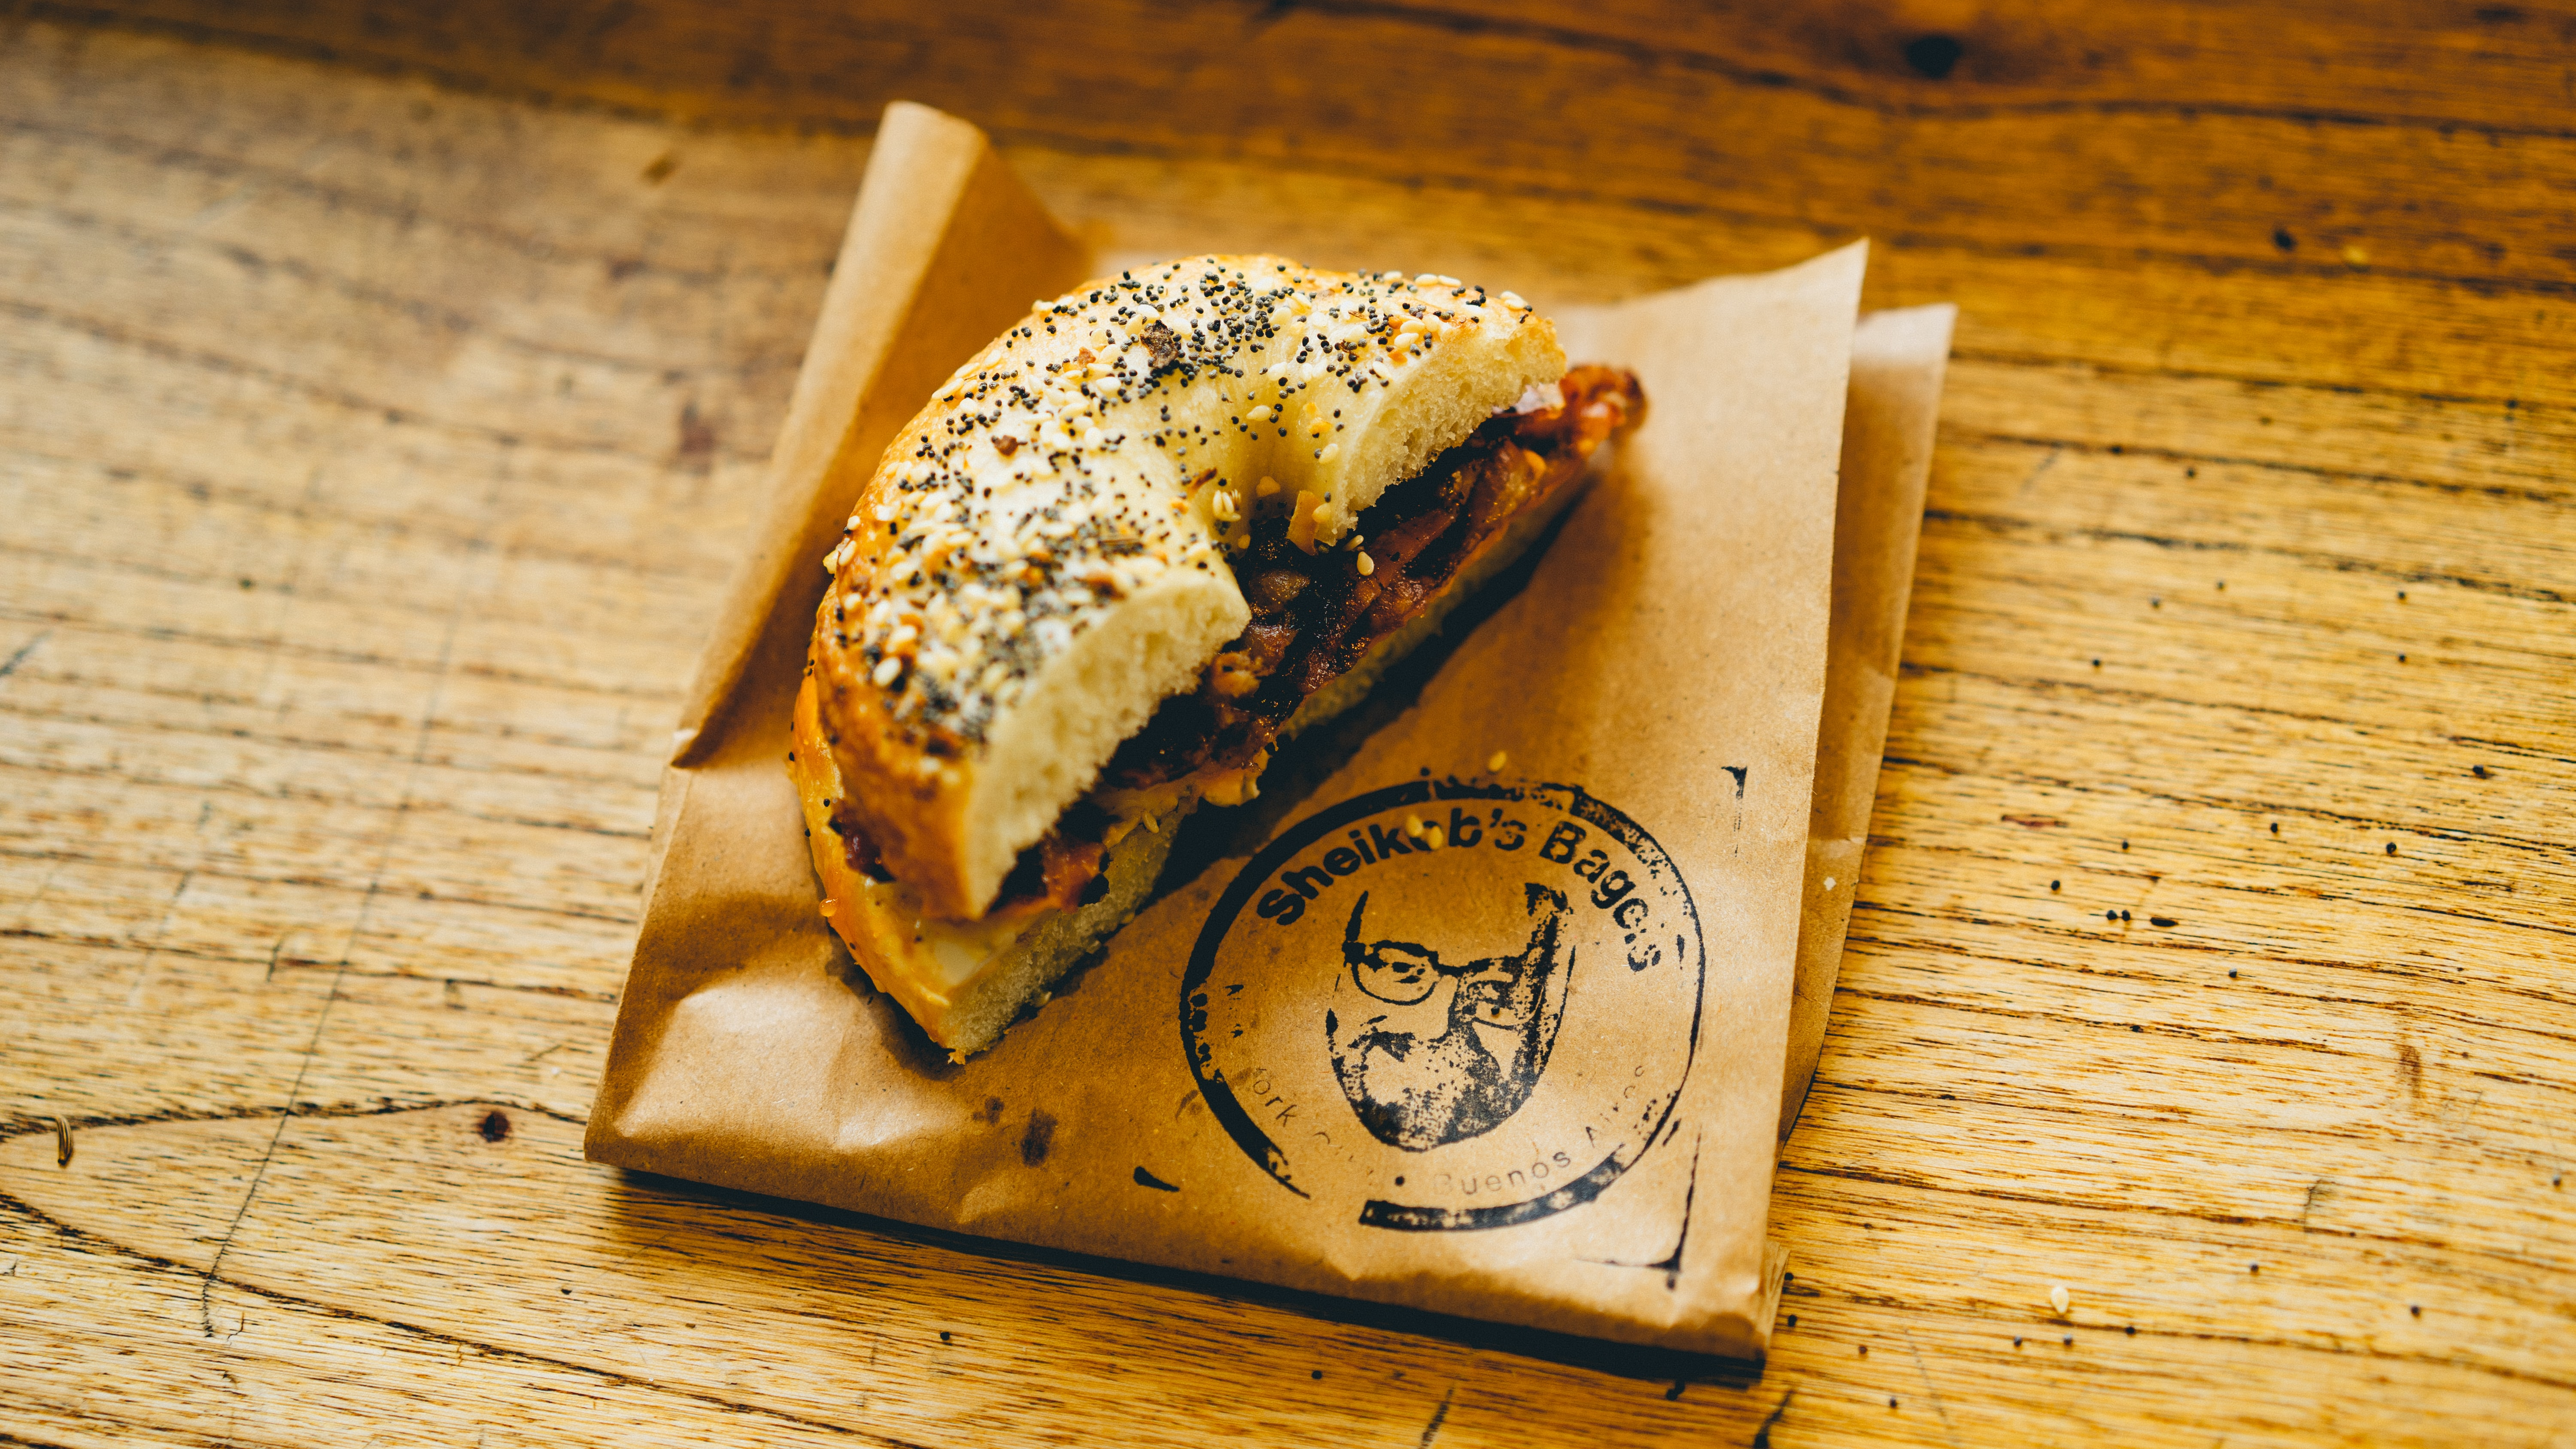 A bacon egg bagel covered in poppy and sesame seeds on top of a brown paper bag labeled Shekob's Bagels